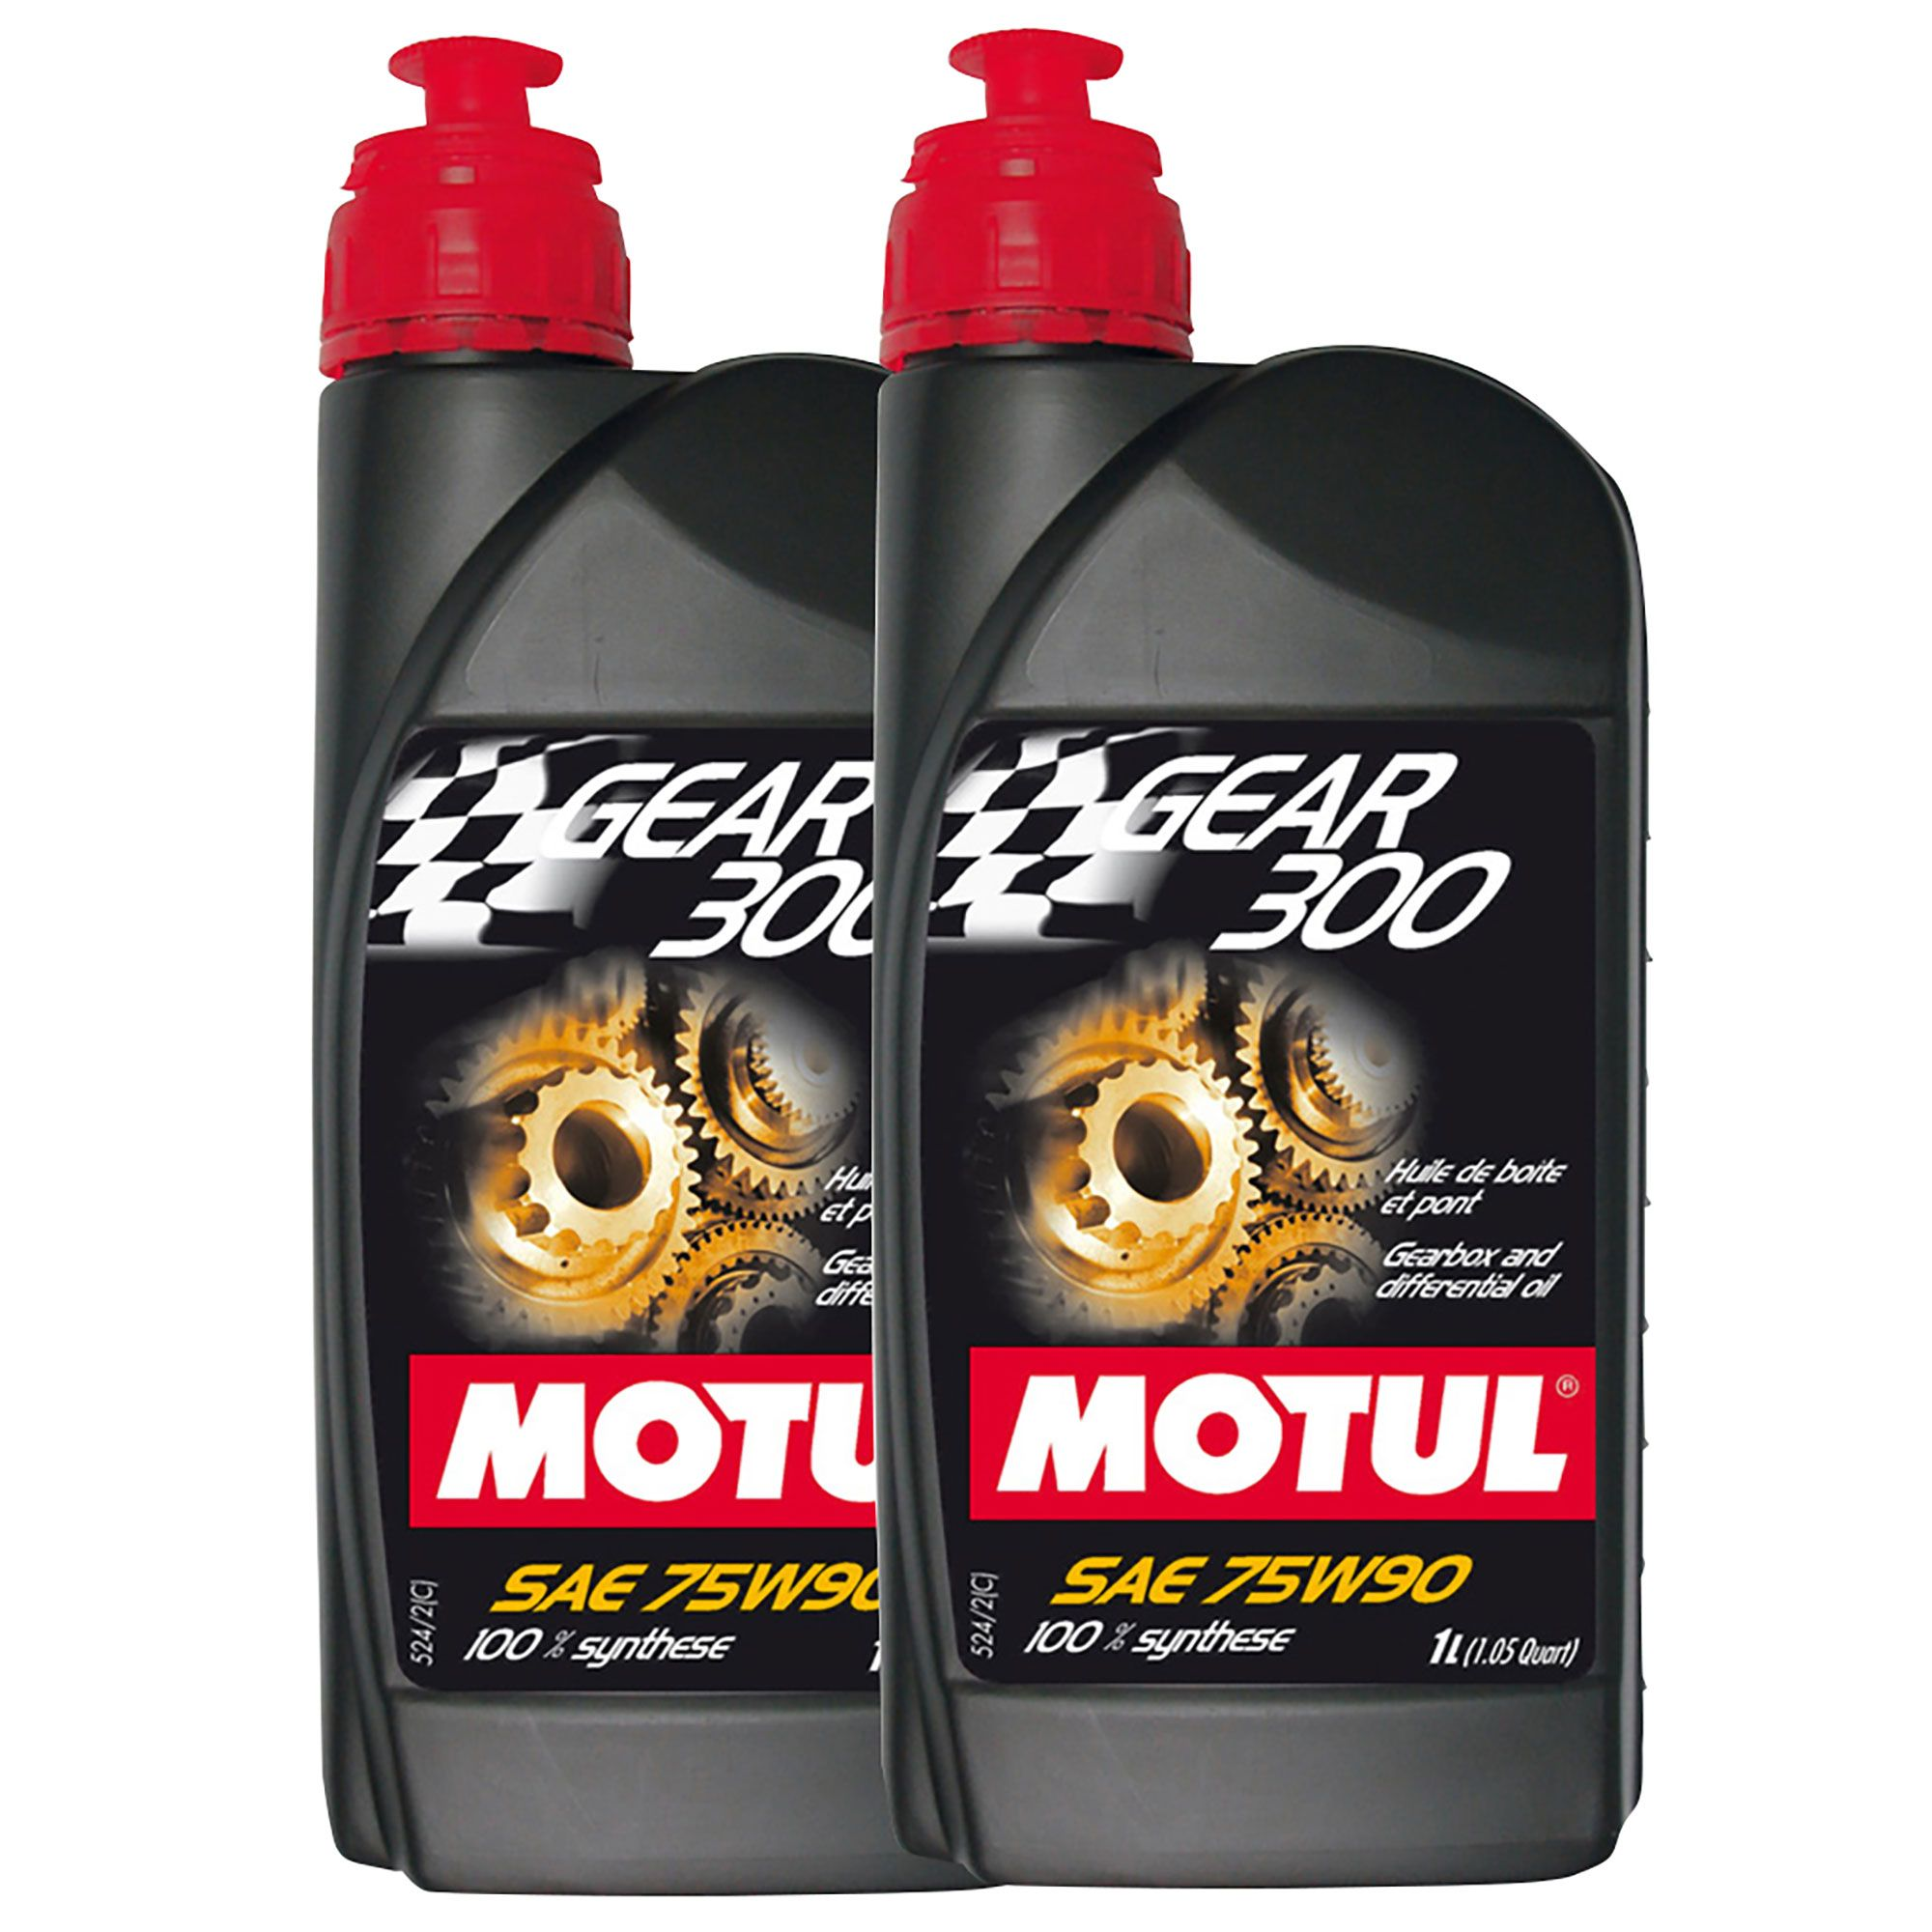 Details about Motul Gear 300 75W90 100% Synthetic Rally / Racing Gearbox  Oil - 2 x 1 Litre